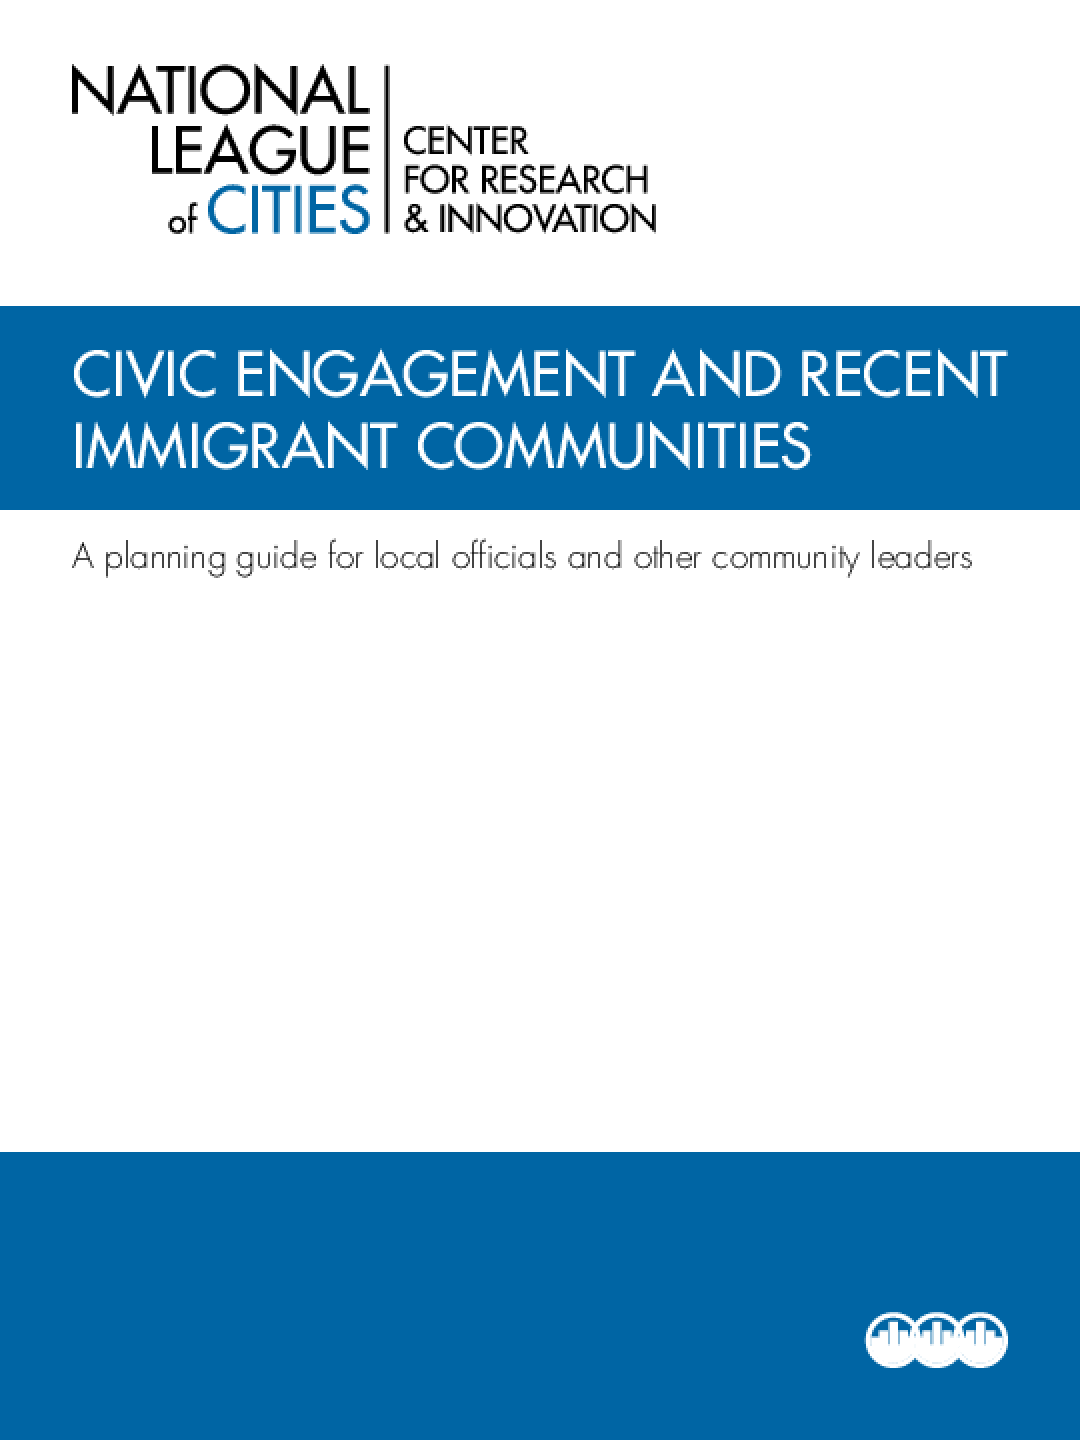 Civic Engagement and Recent Immigrant Communities